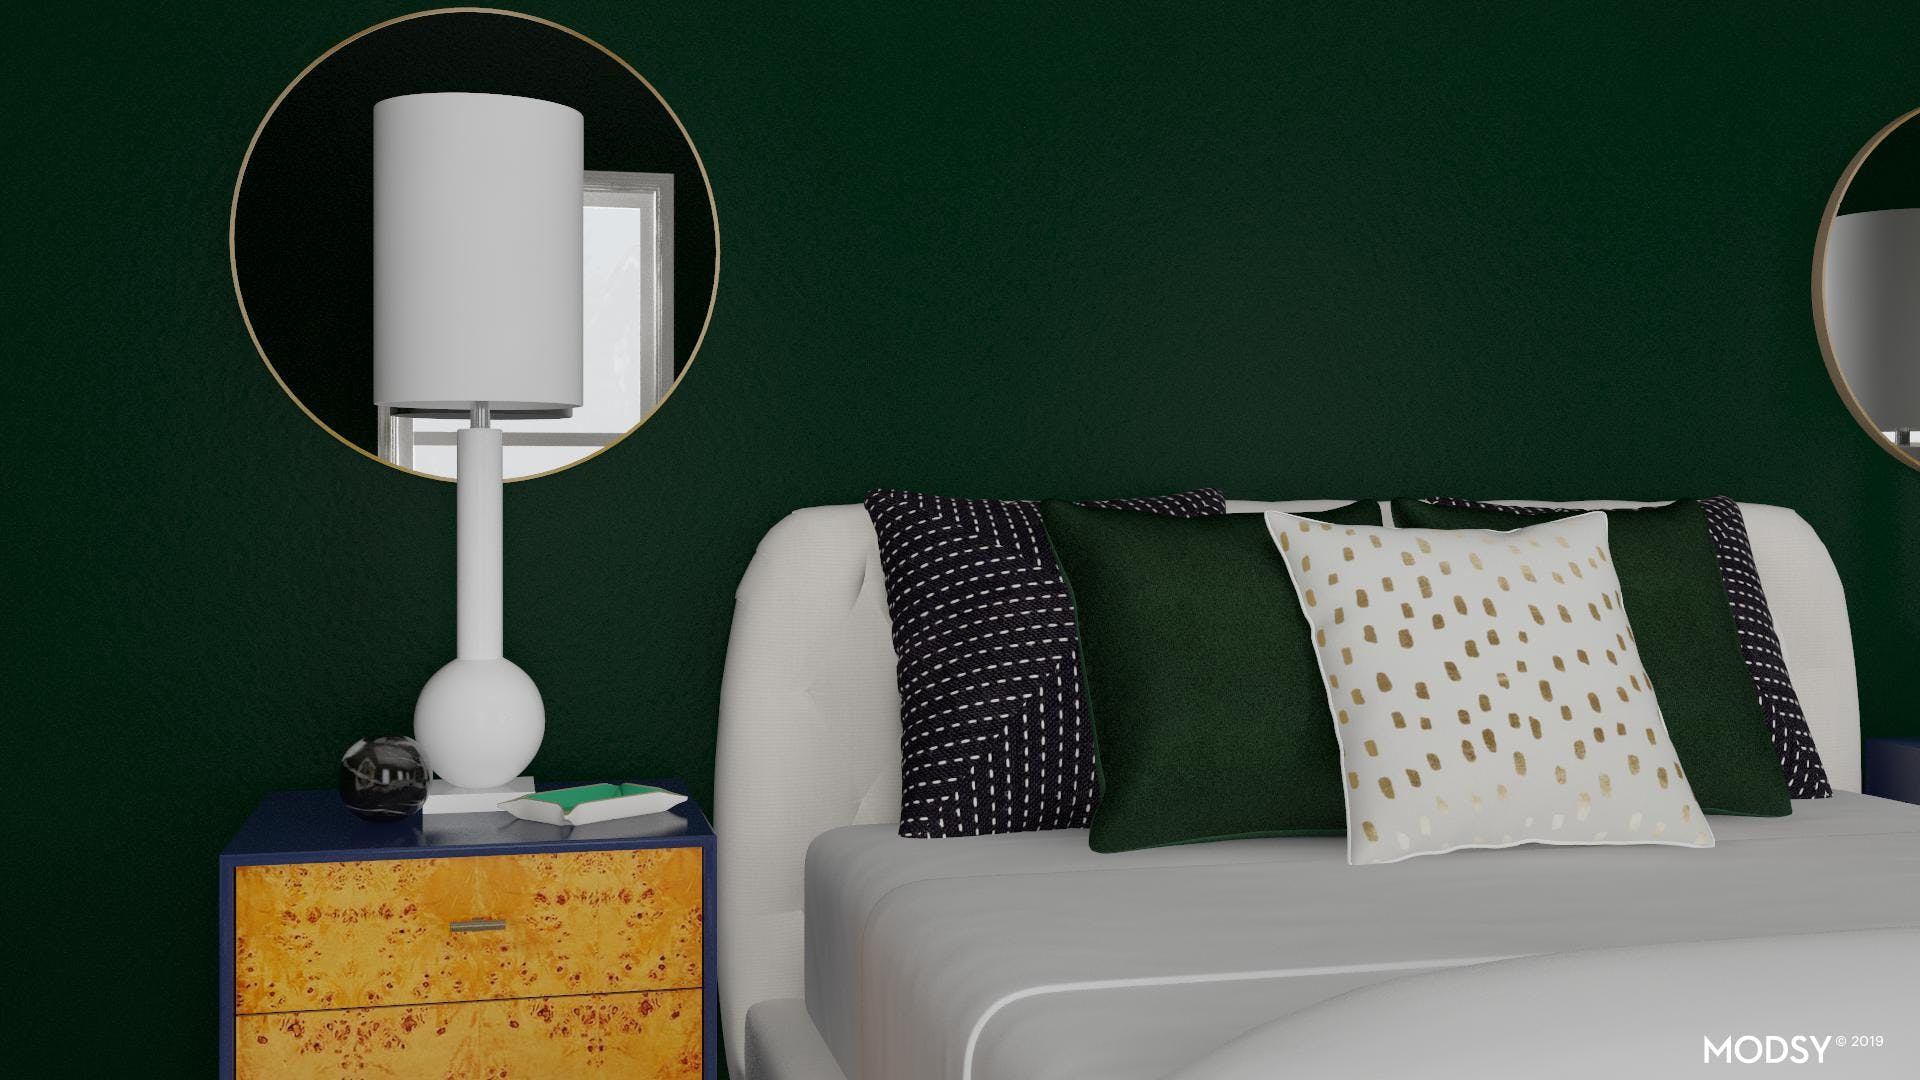 Art Decor Bedroom With A Green Twist